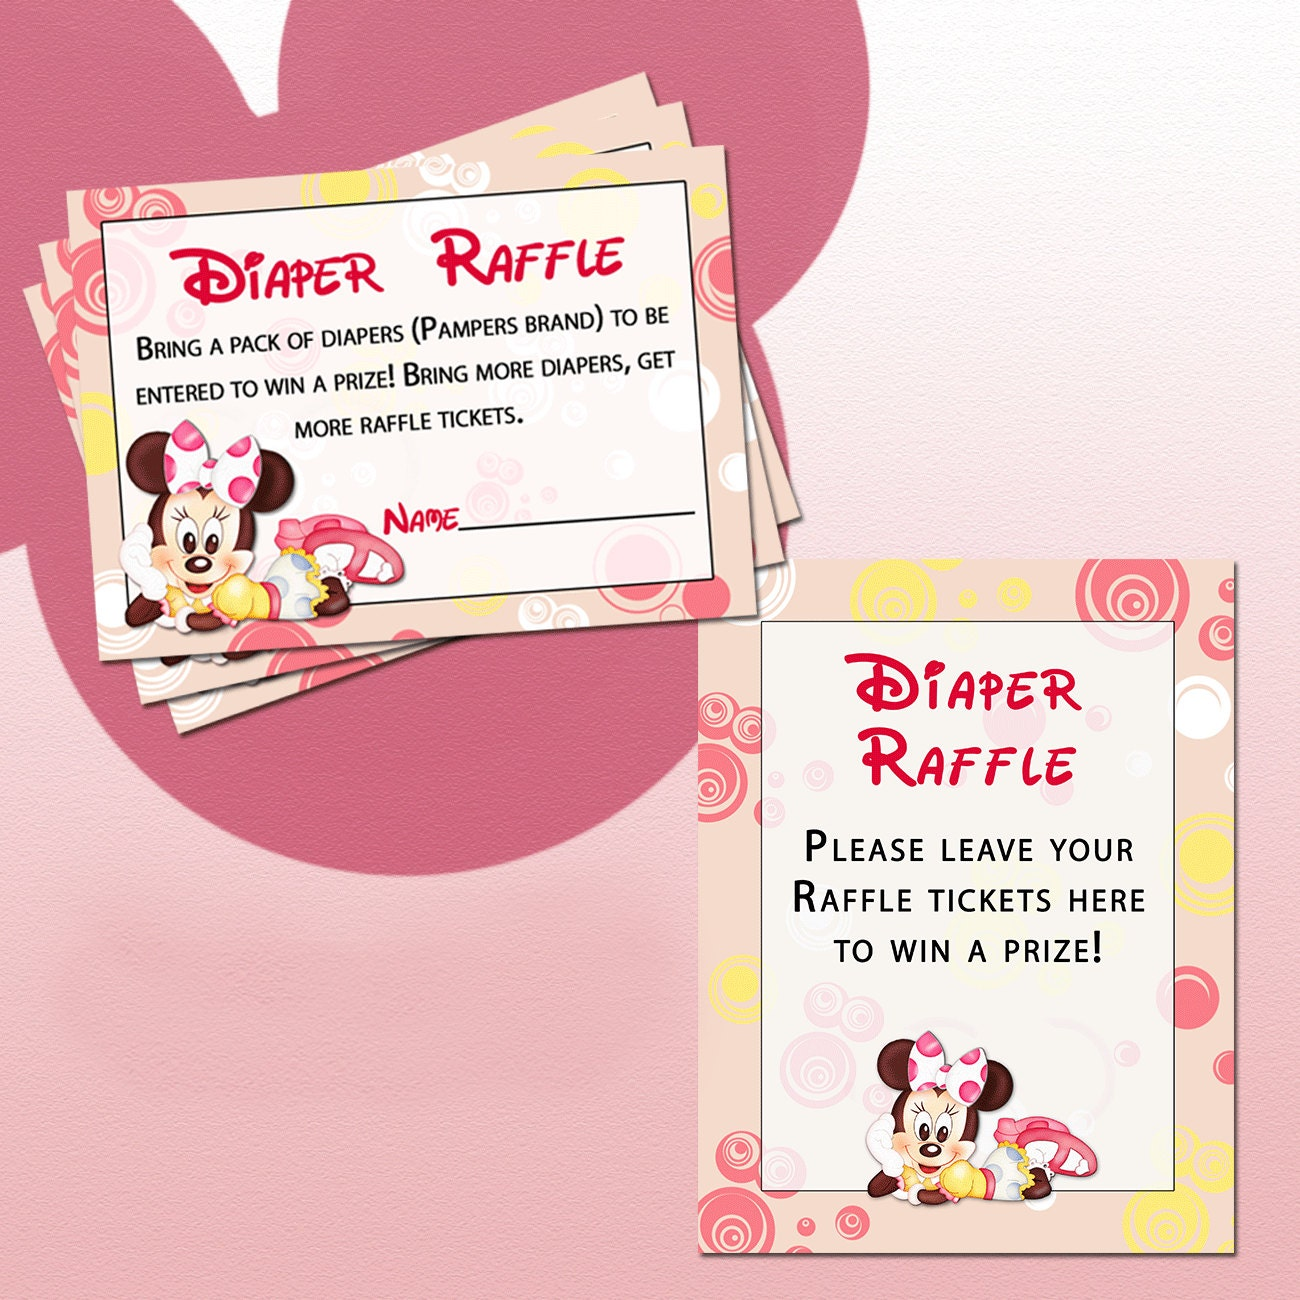 Diaper Raffle Ticket Printable Diaper raffle tickets and